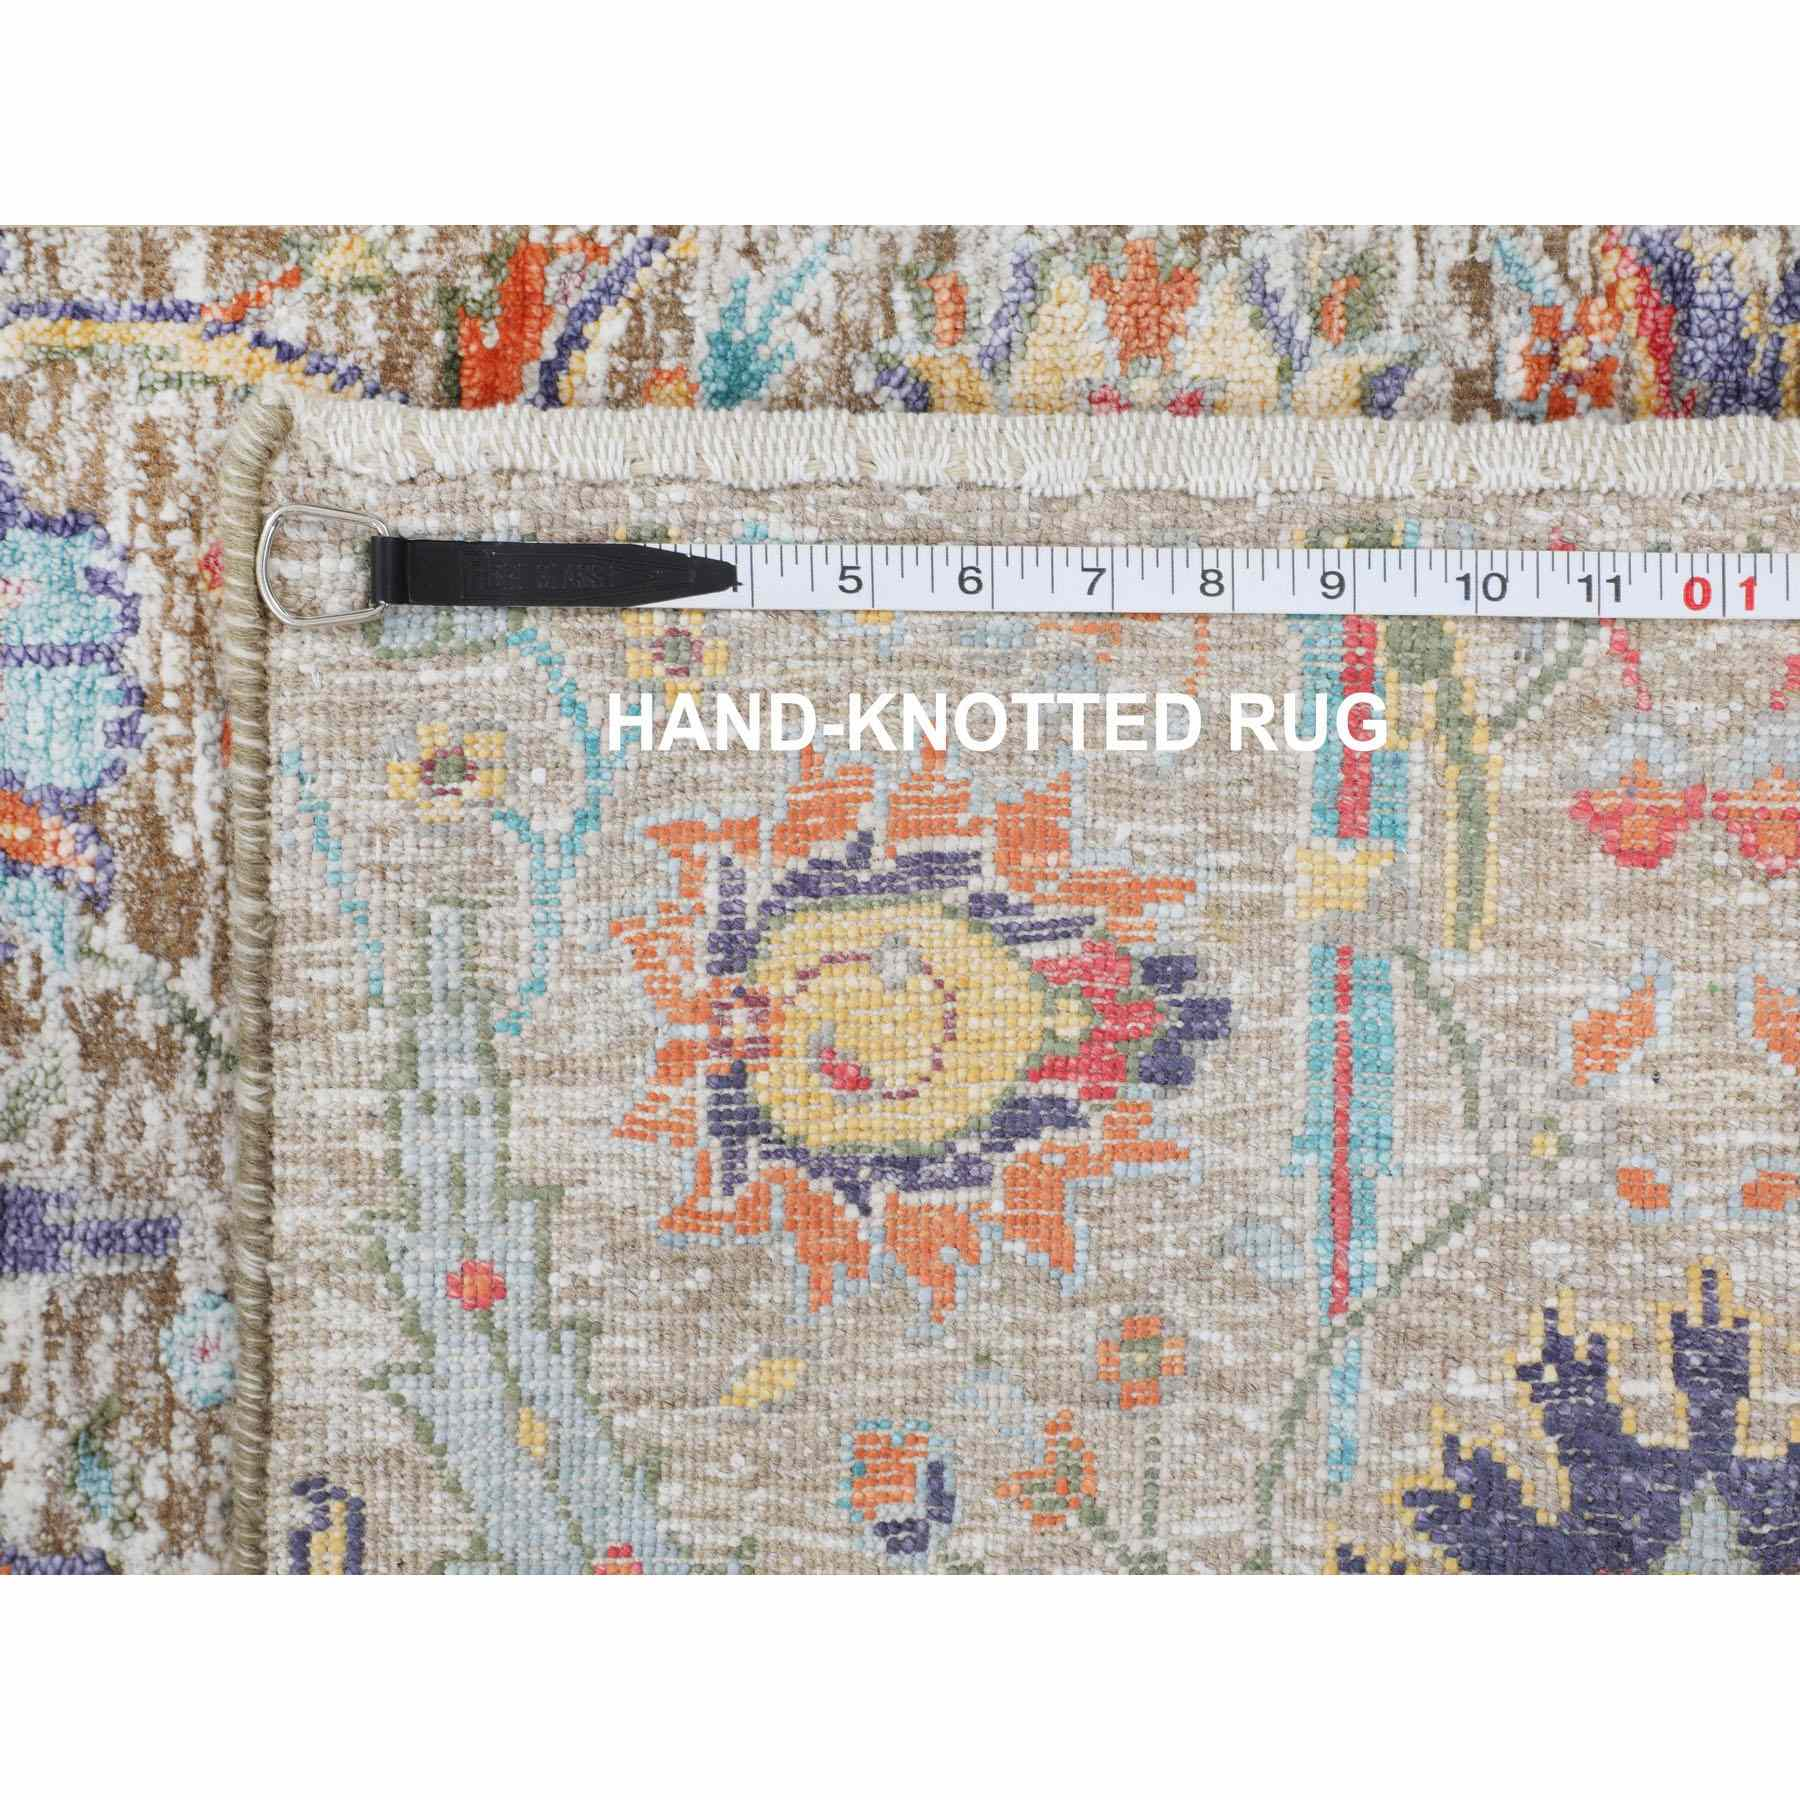 Transitional-Hand-Knotted-Rug-290935